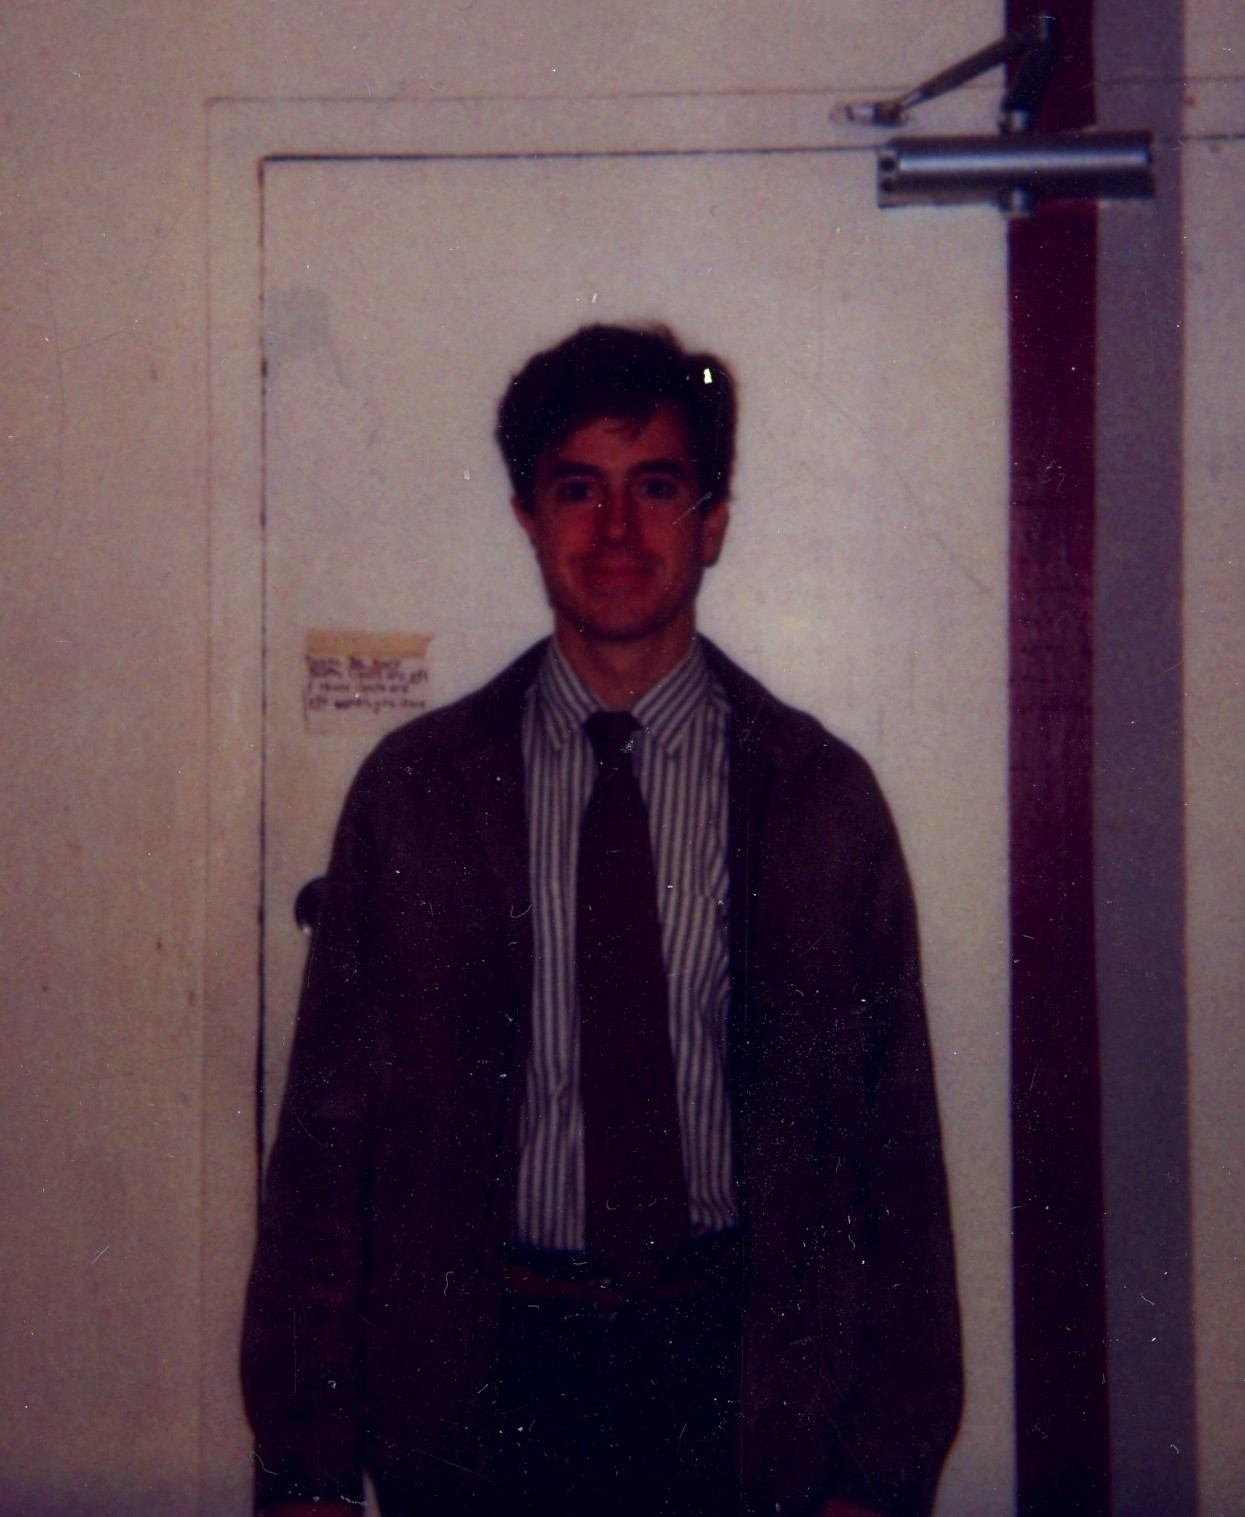 00 00 0000 colbert training center 001 10 Things You Never Knew About Stephen Colbert